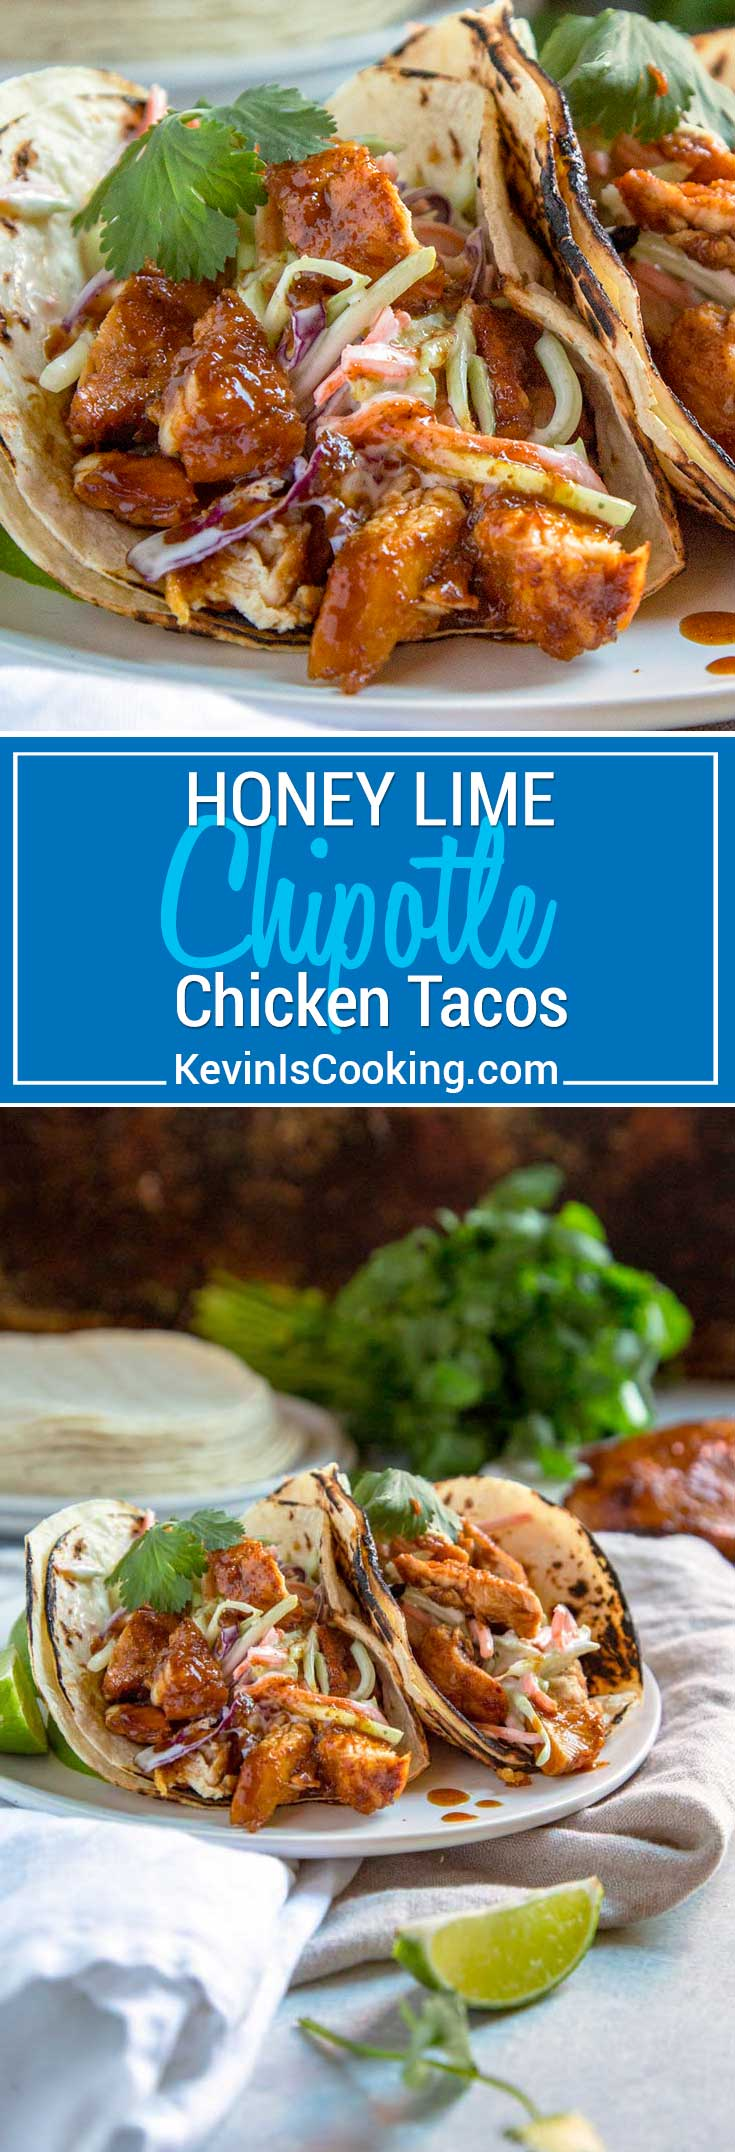 These Honey Lime Chipotle Chicken are a smash hit every time. Grilled or sautéed, the citrus marinade, warm spices, fresh herbs & honey make it a flavor explosion. With a Ranch Apple Slaw on top these are fantastic tacos. #tacos #chipotle #chicken #honeylimechicken